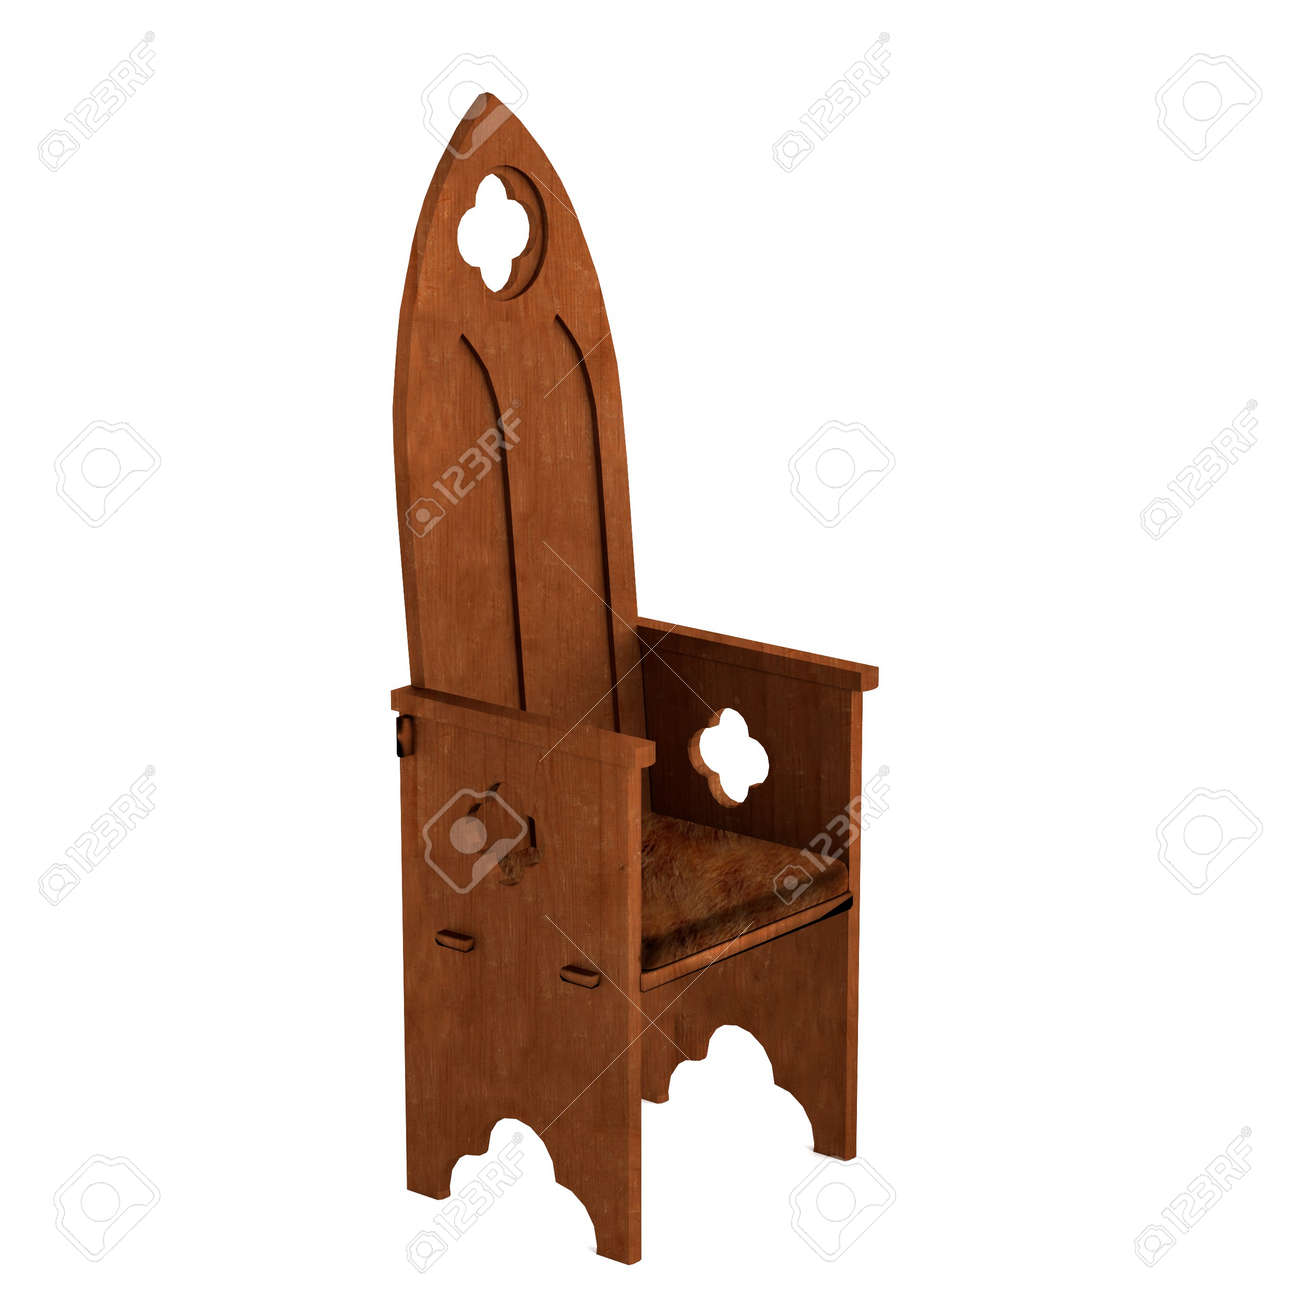 realistic 3d render of medieval chair Stock Photo - 27834846  sc 1 st  123RF.com : medieval chair - lorbestier.org